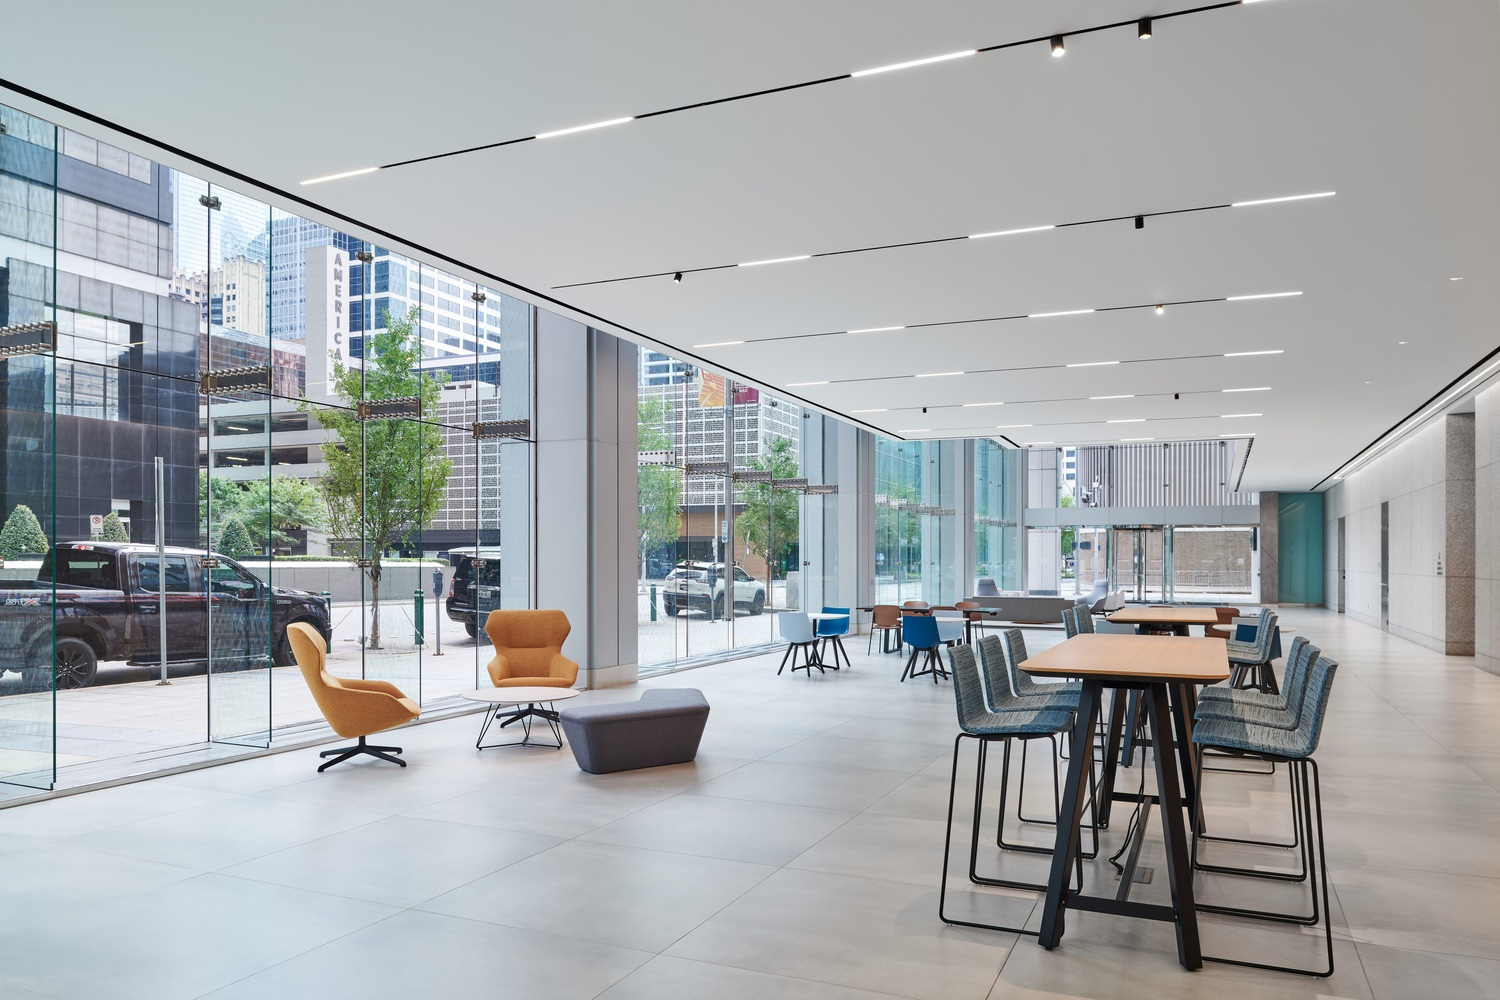 The lobby of a large building that has some high tables with chairs and seating areas.